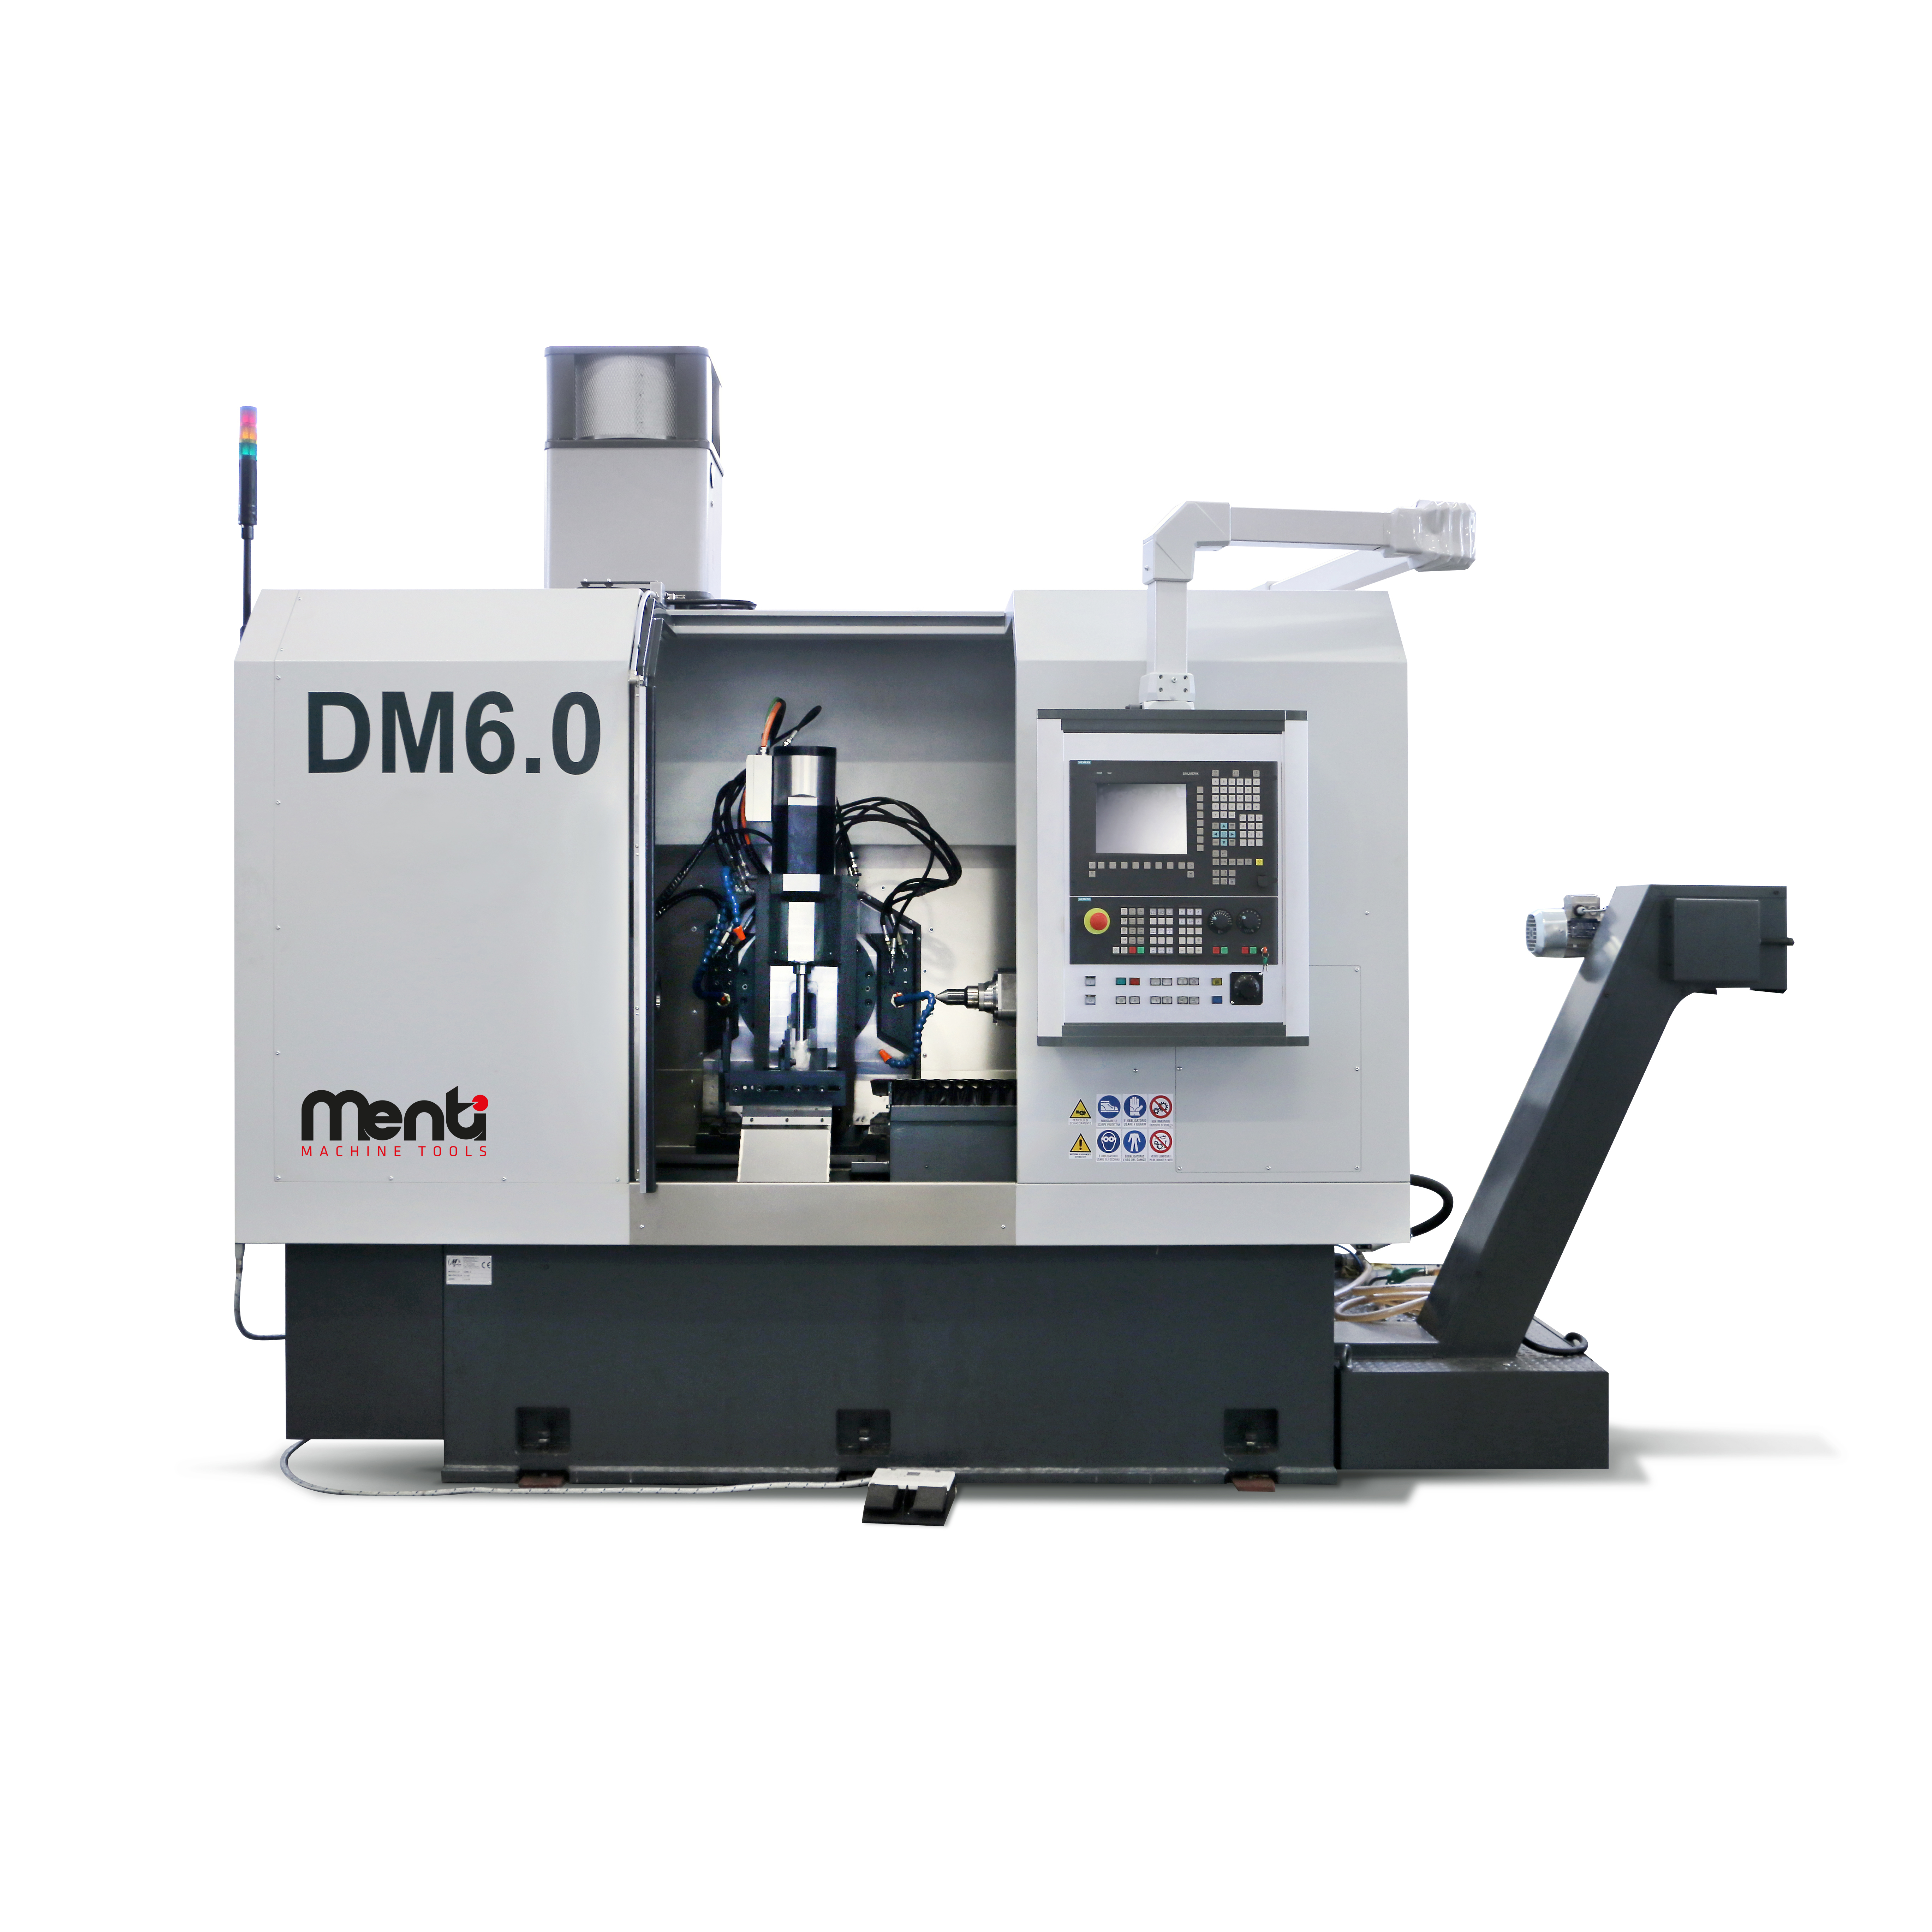 Menti Machine Tools DM 6.0